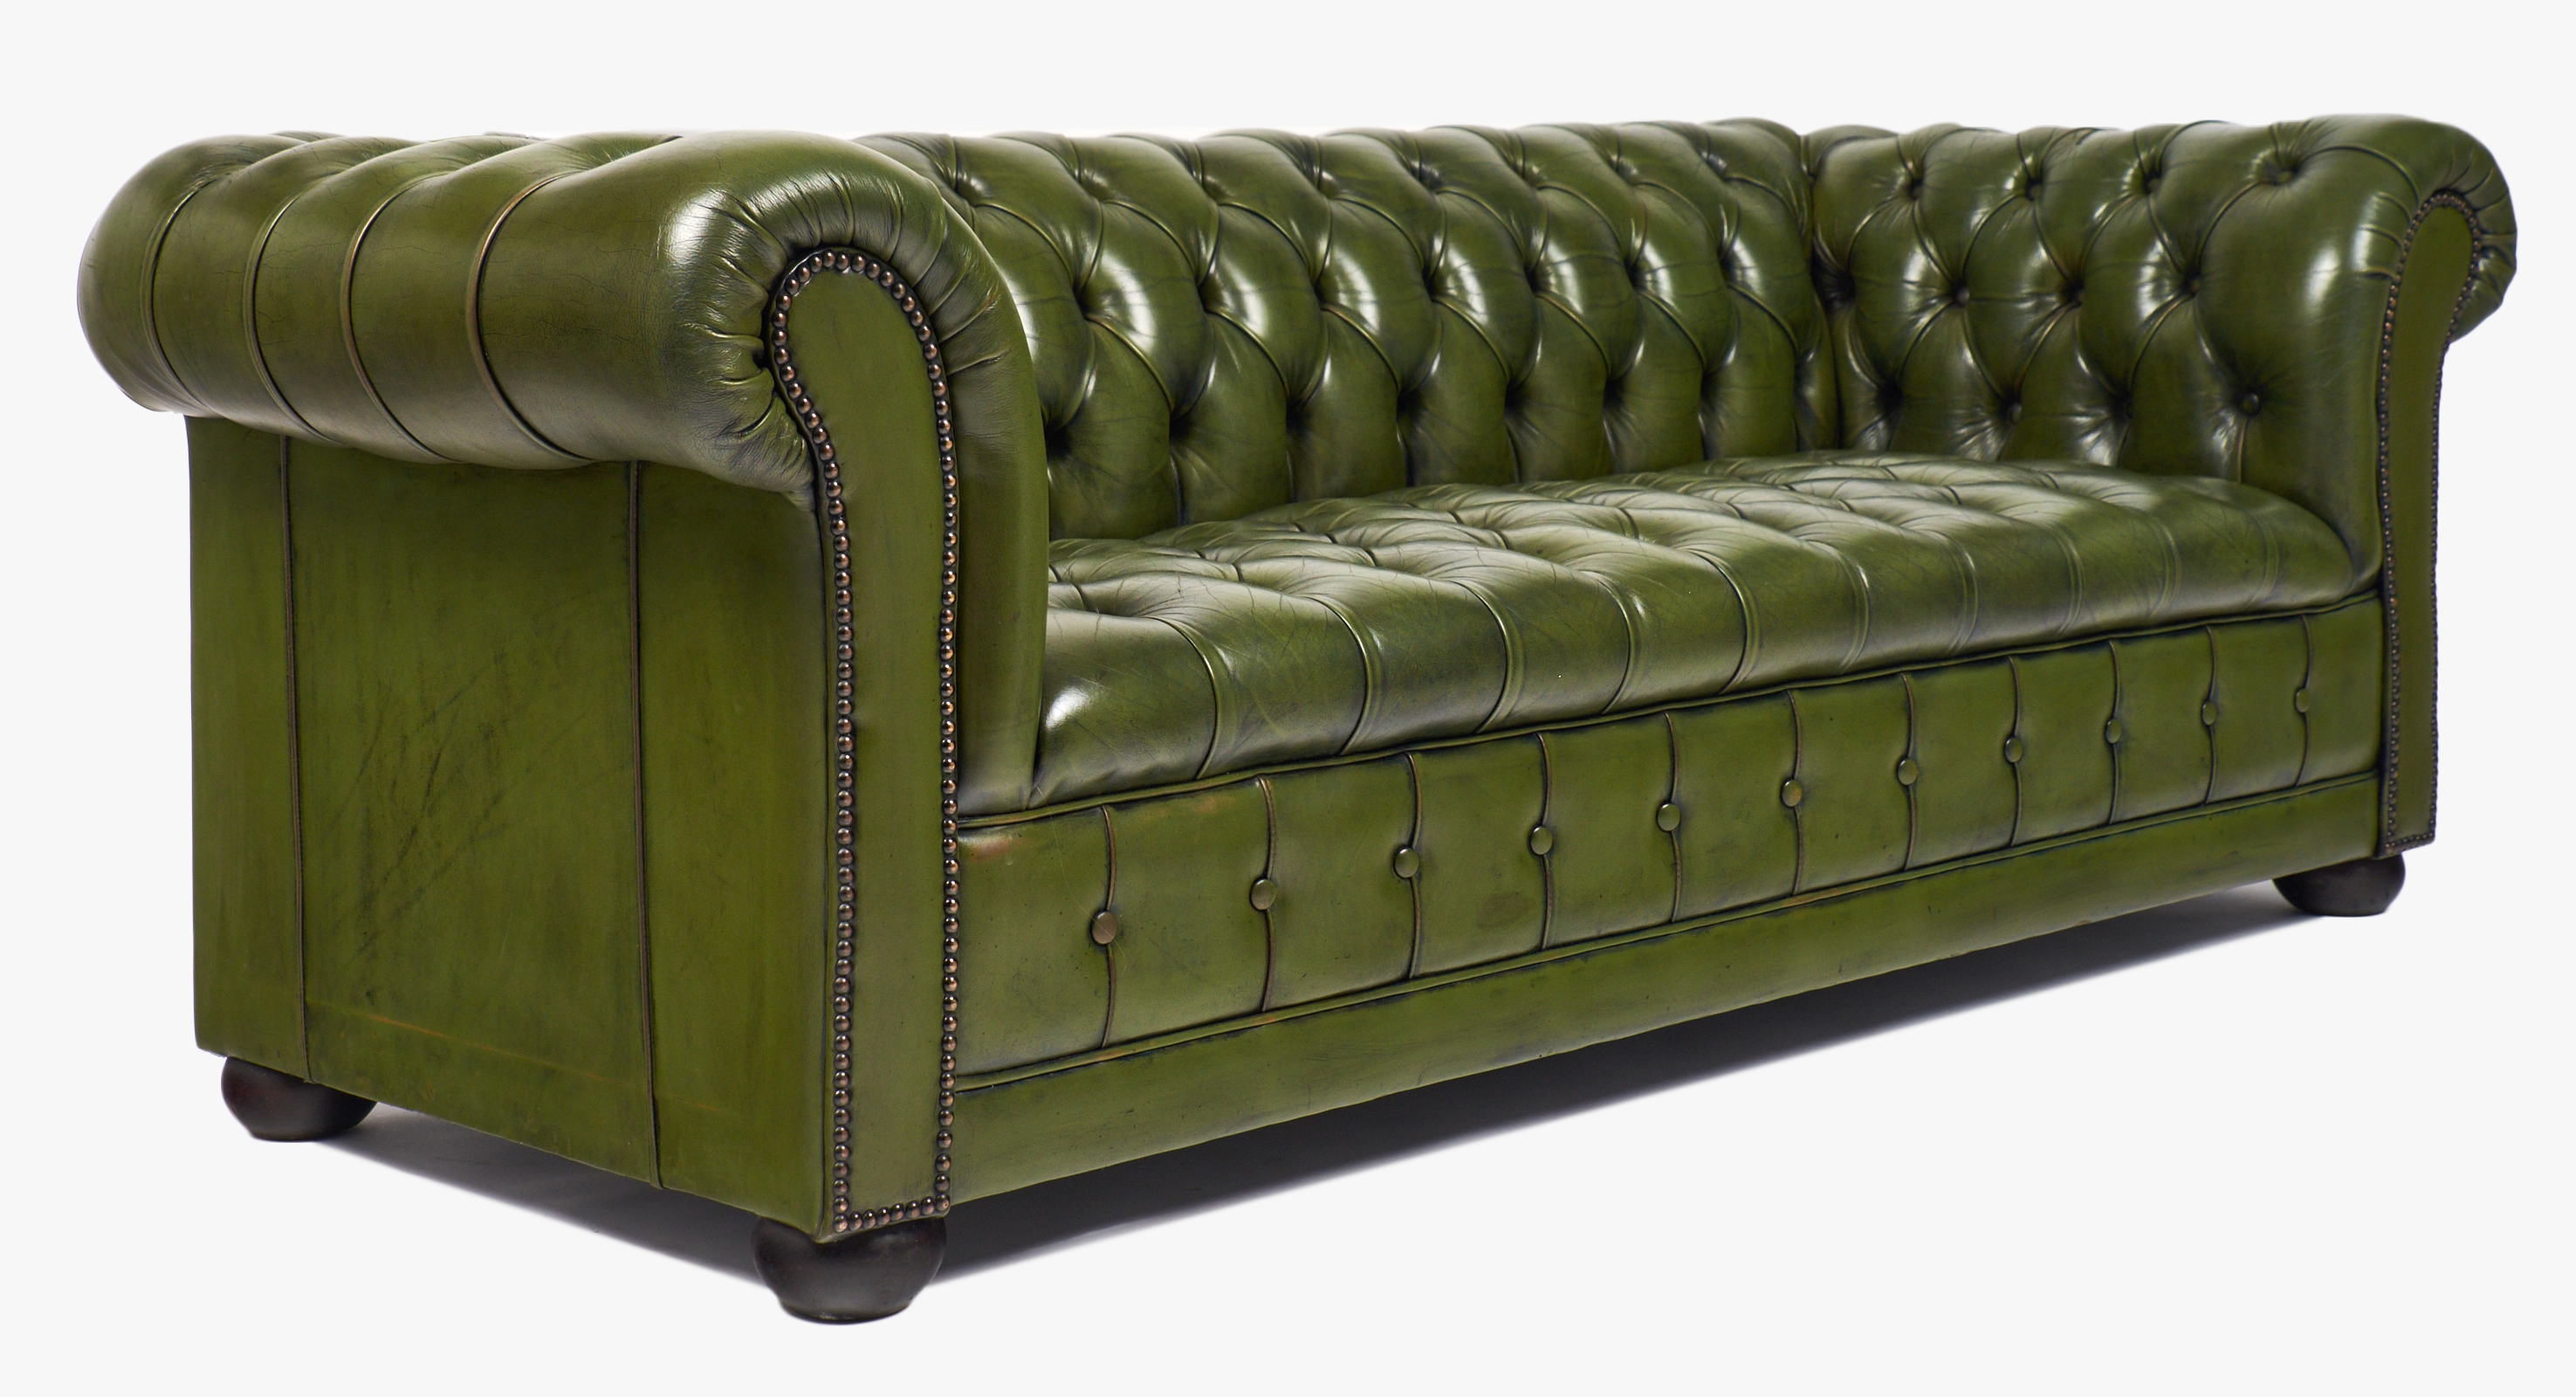 Vintage Green Leather Chesterfield Sofa Jean Marc Fray Throughout Vintage Chesterfield Sofas (Image 14 of 15)